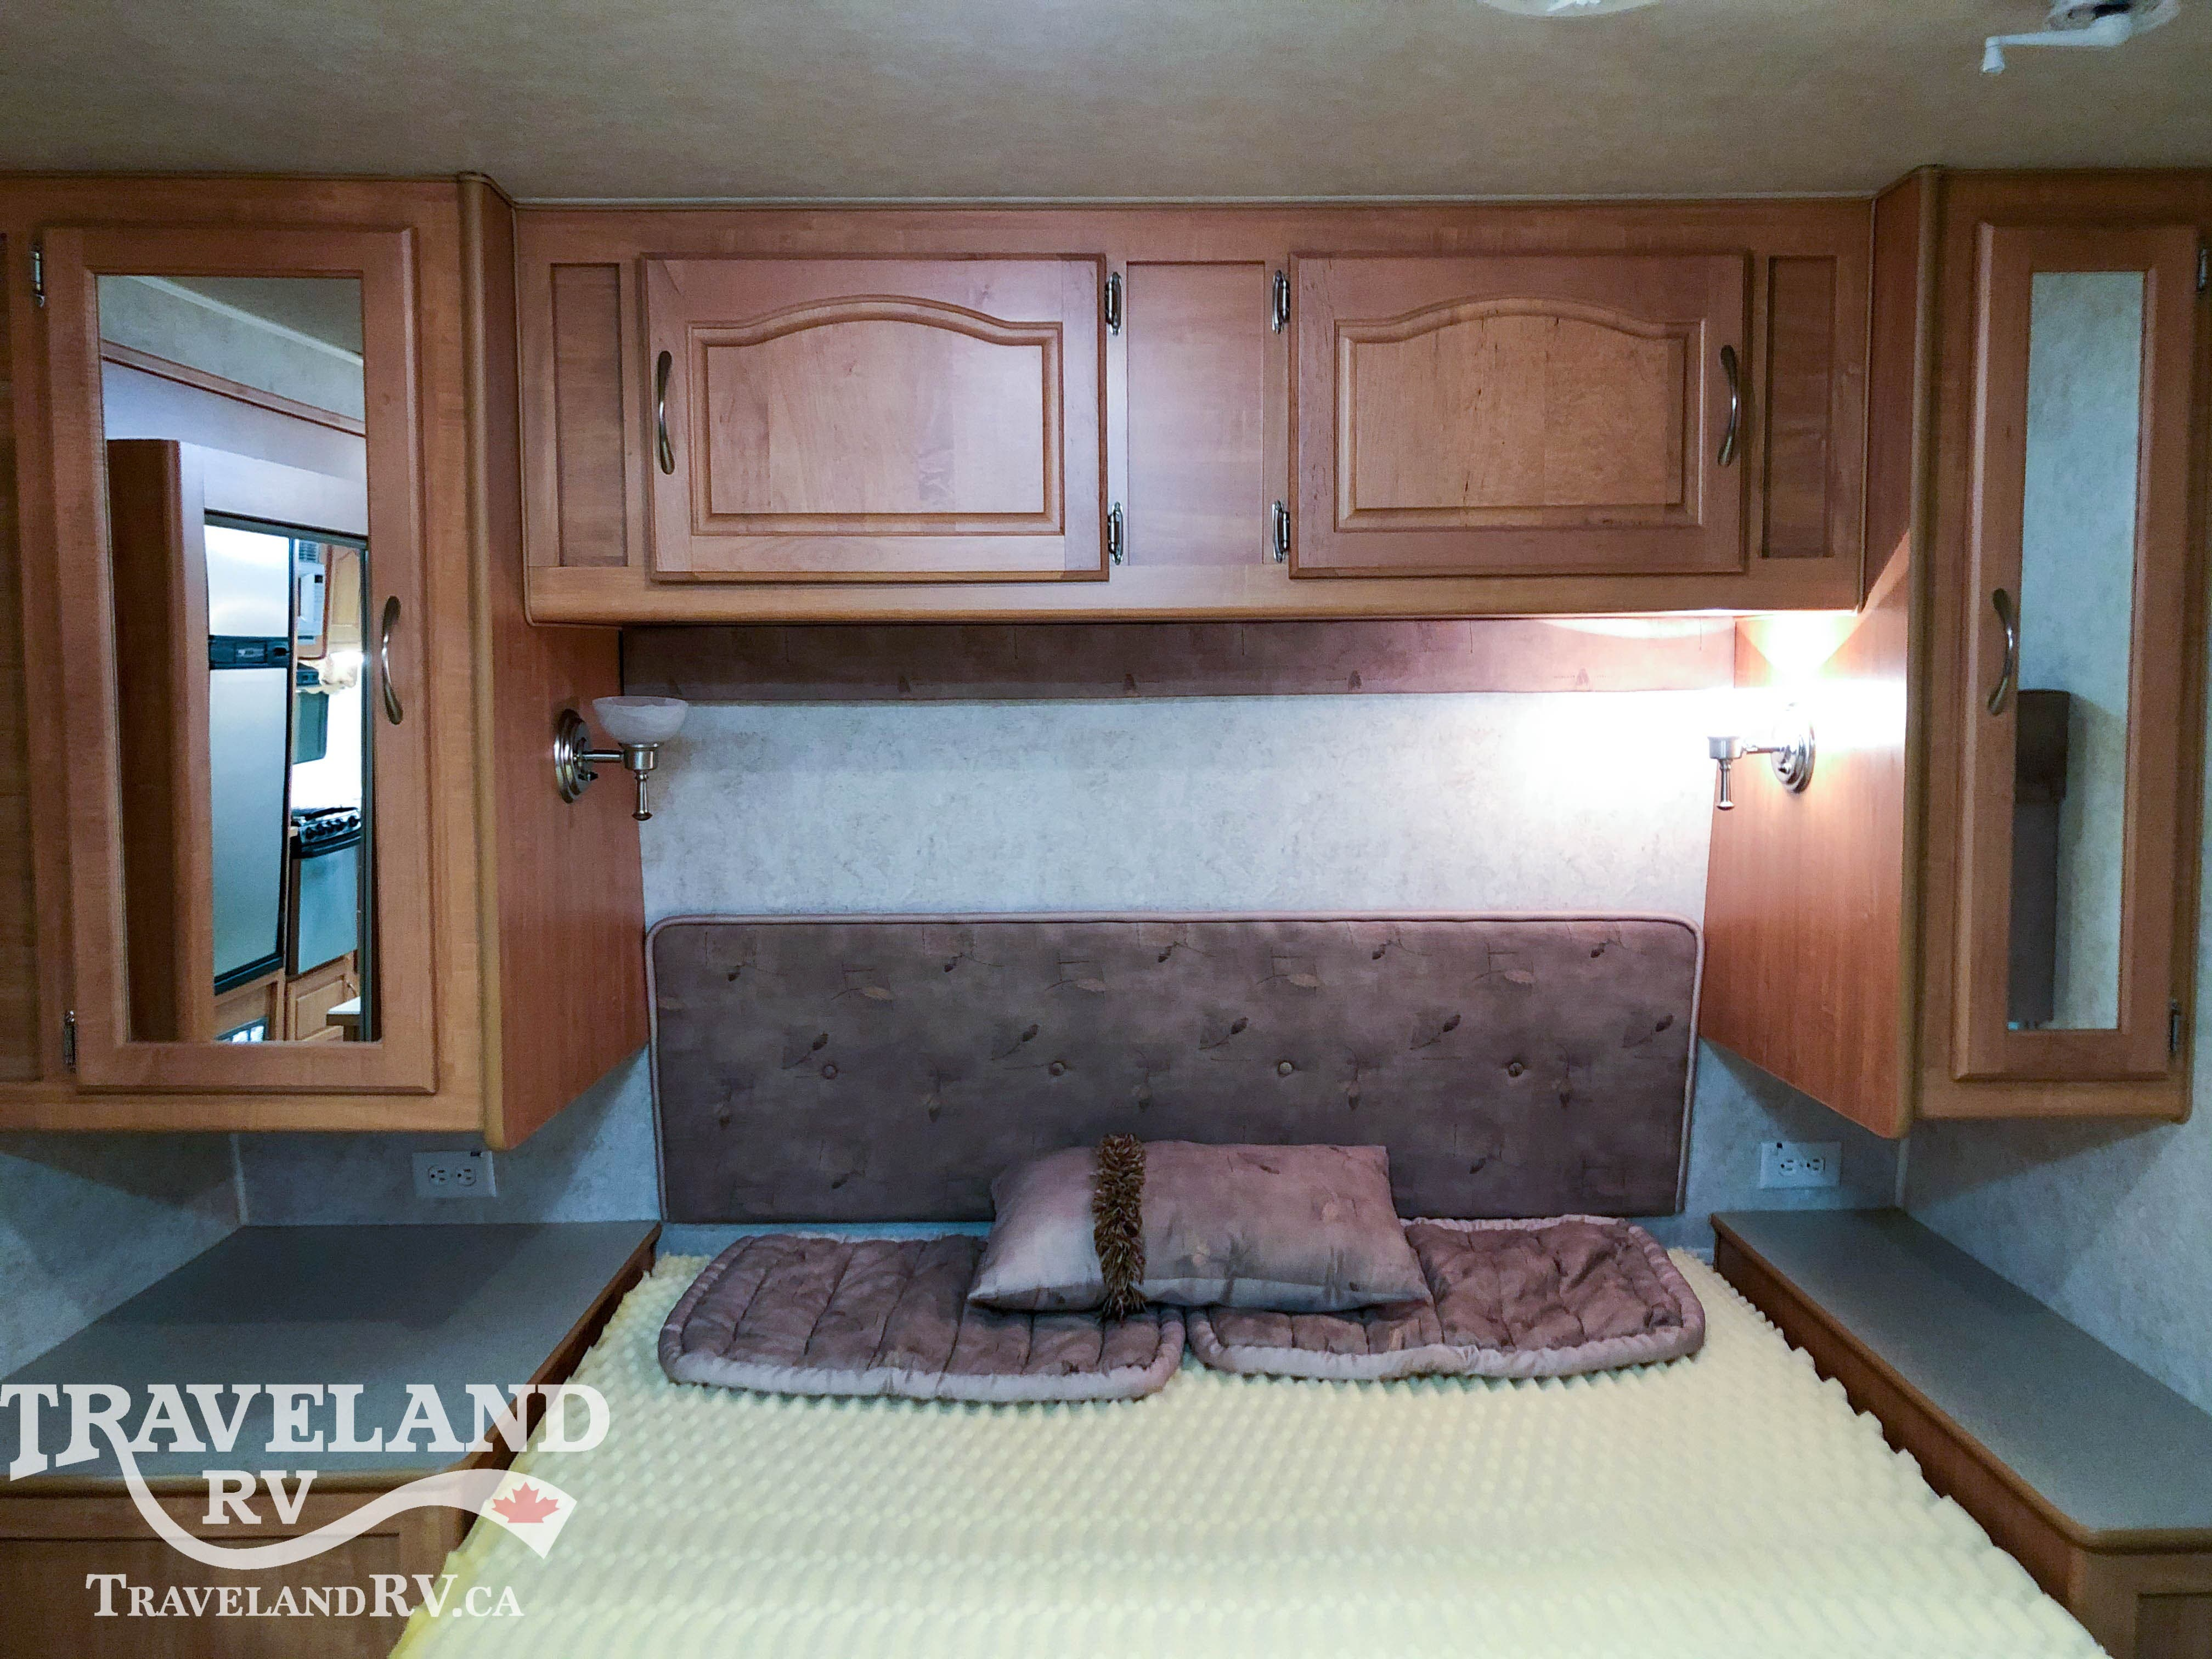 2006 General Coach Corsair Excella 30RLS Thumbnail